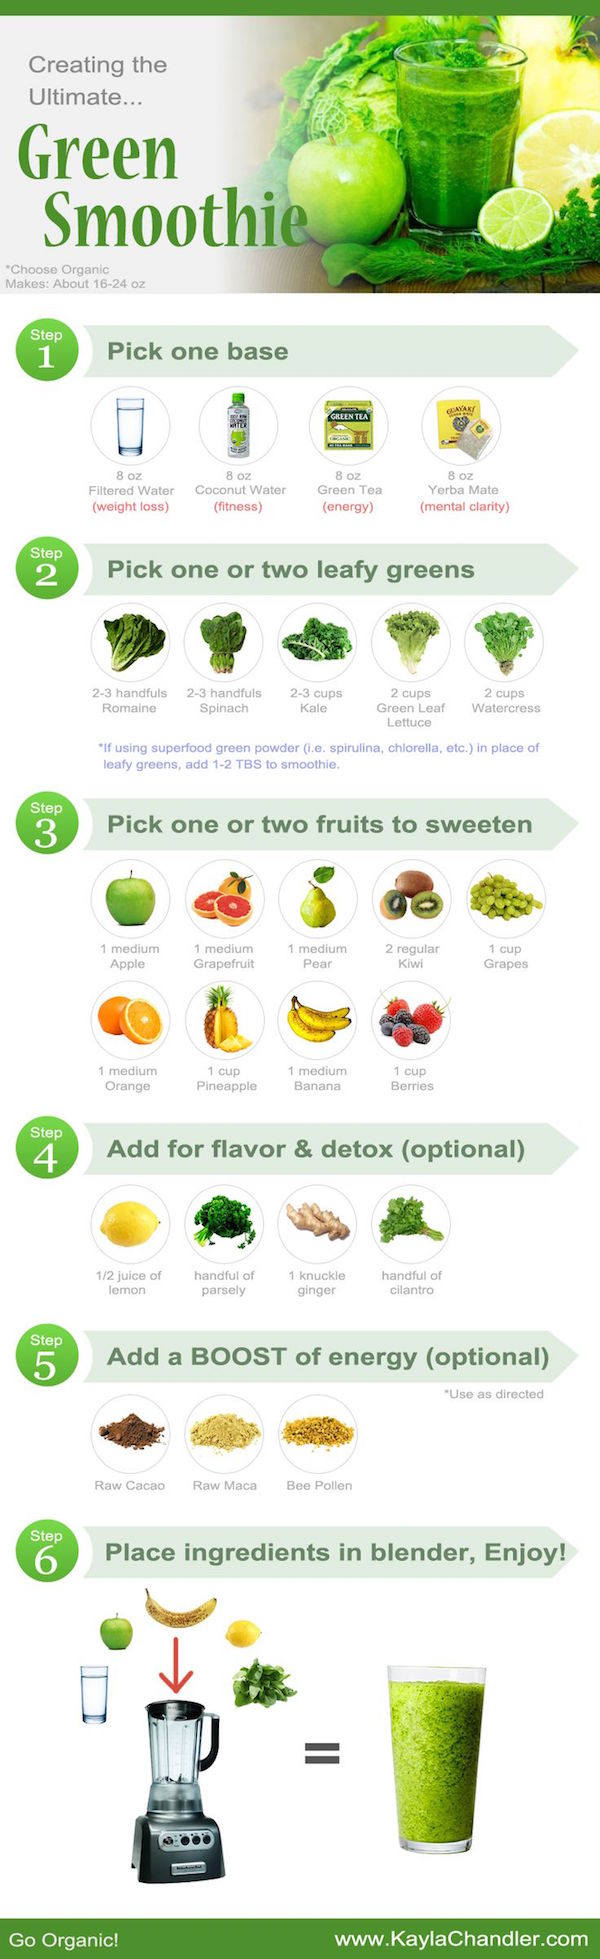 Perfect meal plan to lose weight fast